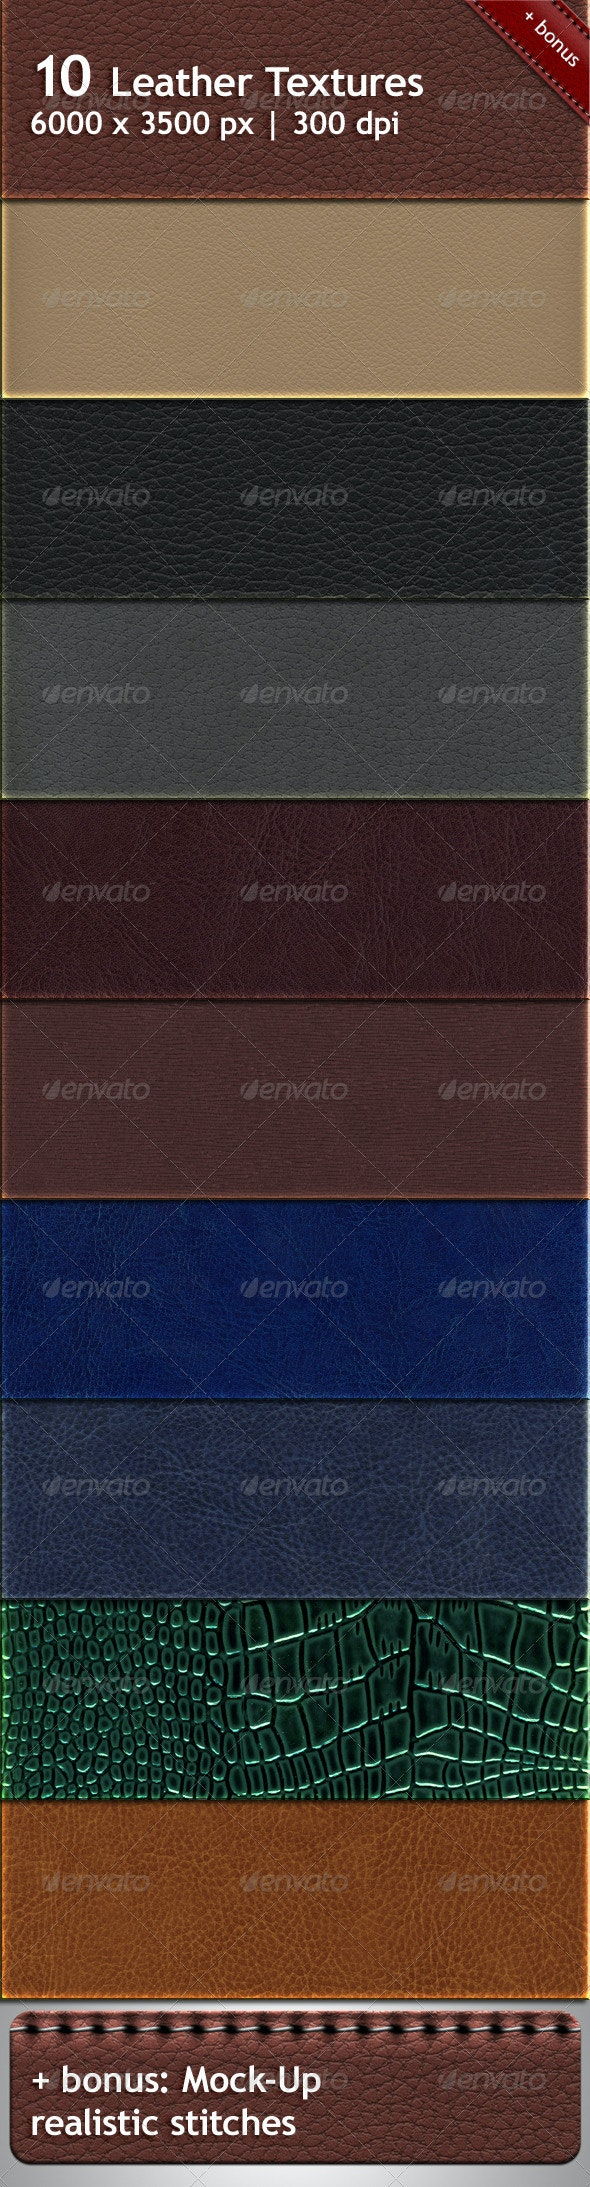 10 Lether Textures - Fabric Textures